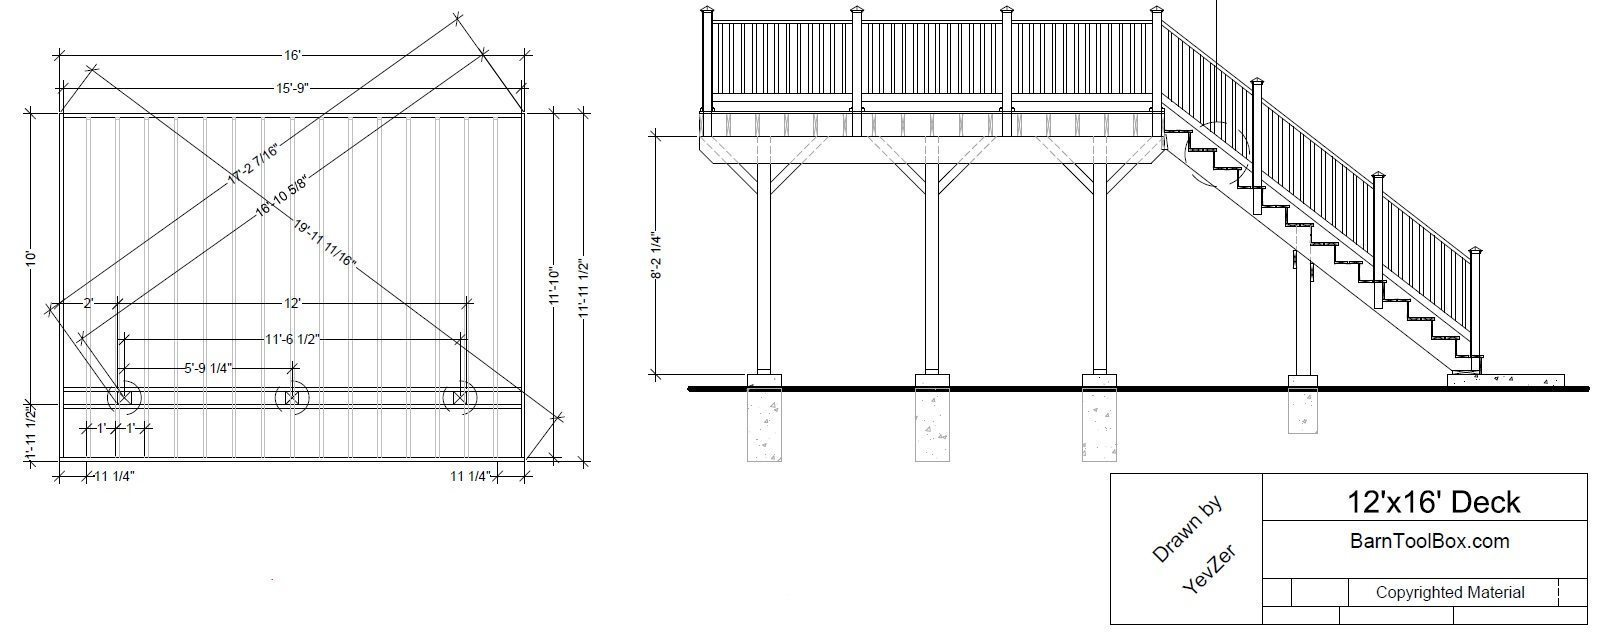 Free 12 x 16 Deck Plan and Maintenance